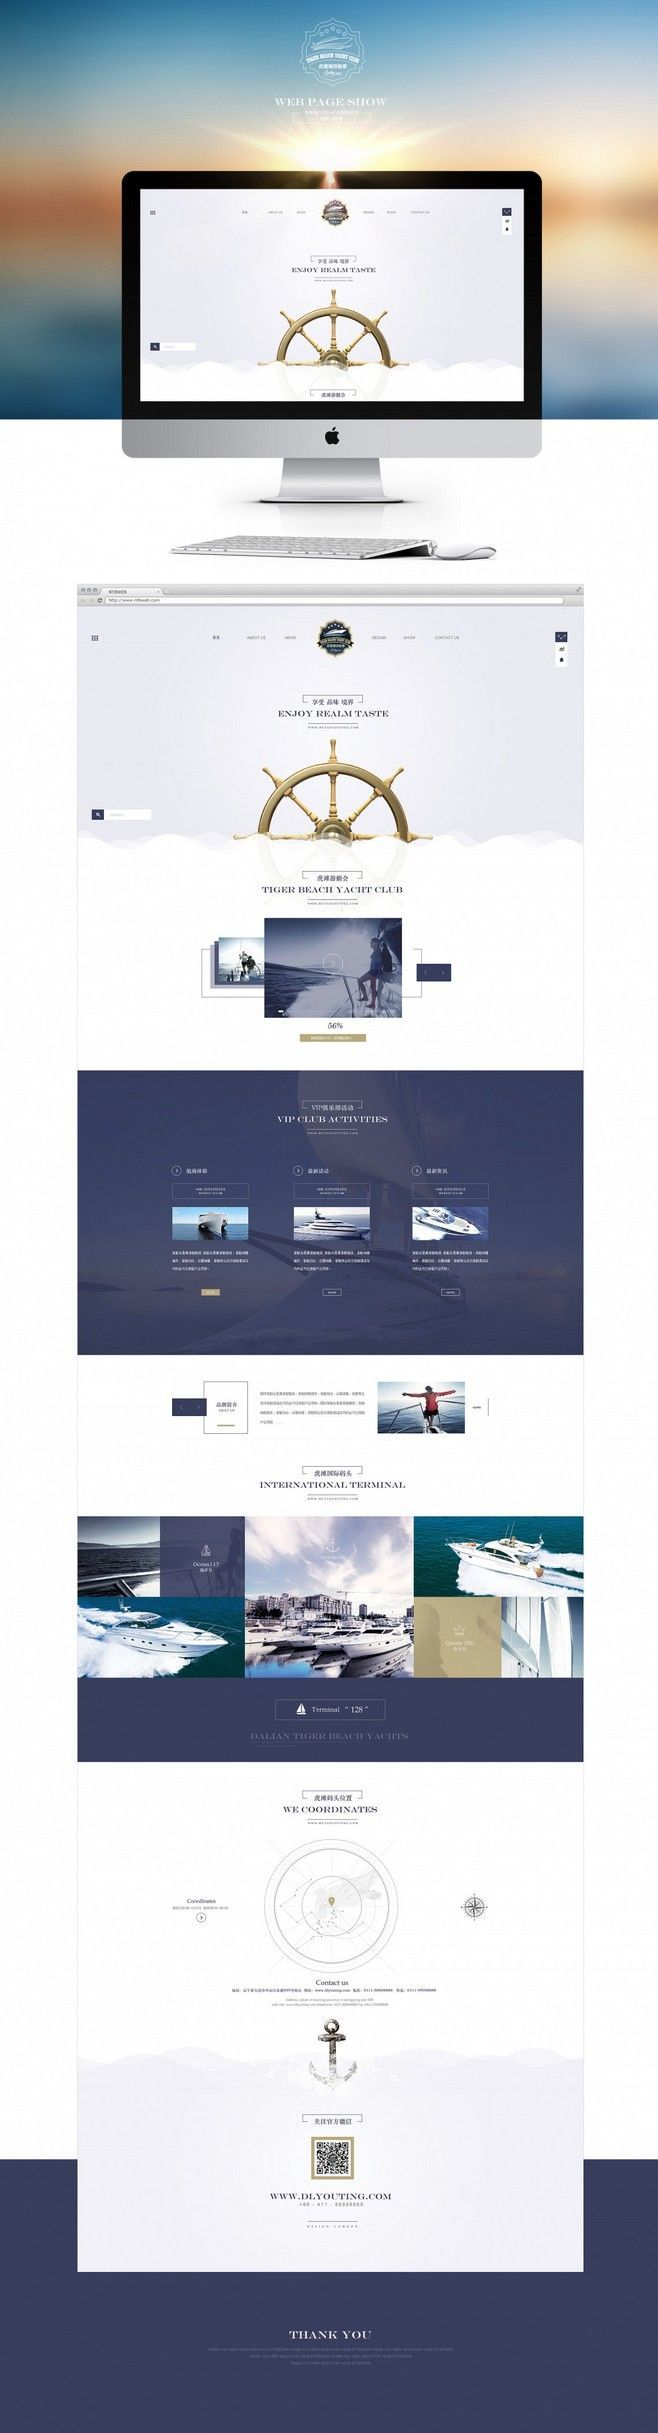 The best images about Web Design on Pinterest Yacht club